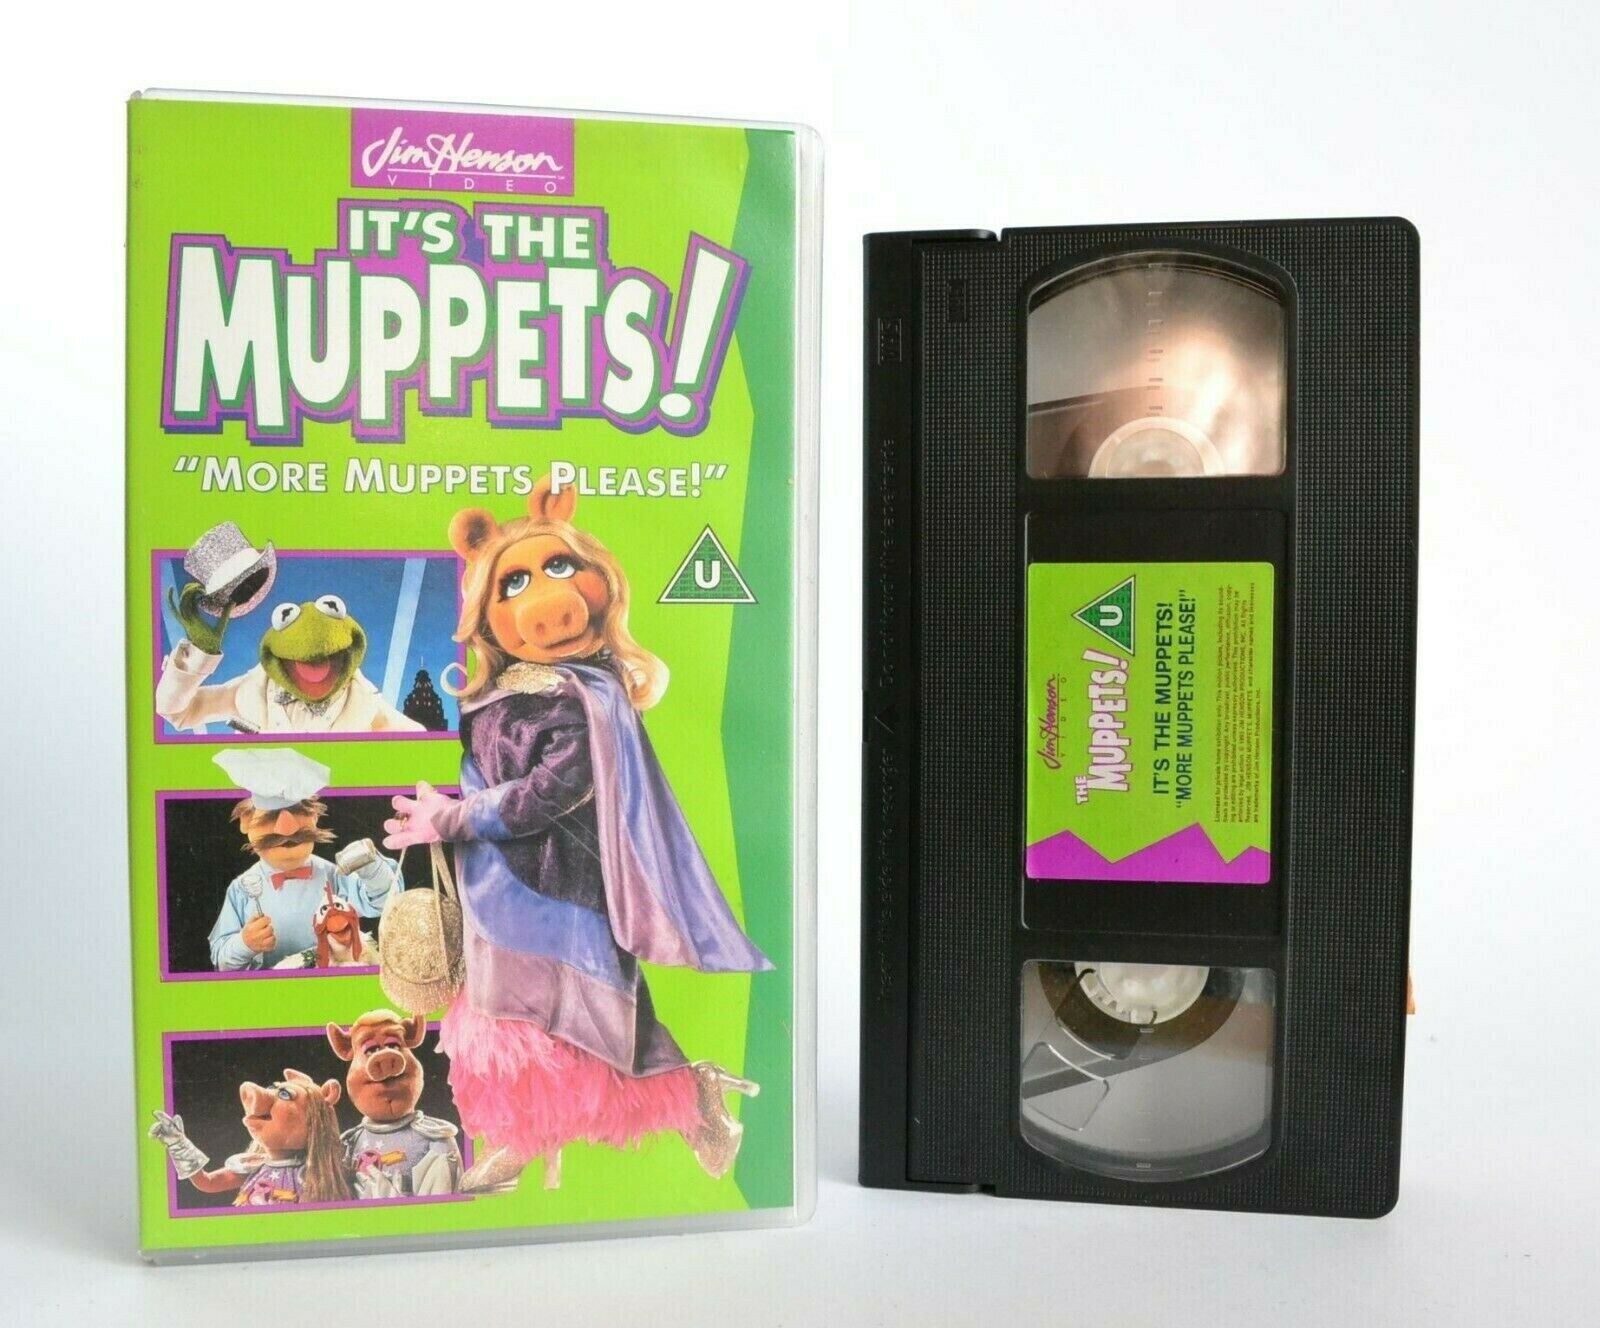 It's The Muppets!: More Muppets Please! - Classic Children's Series - Pal VHS